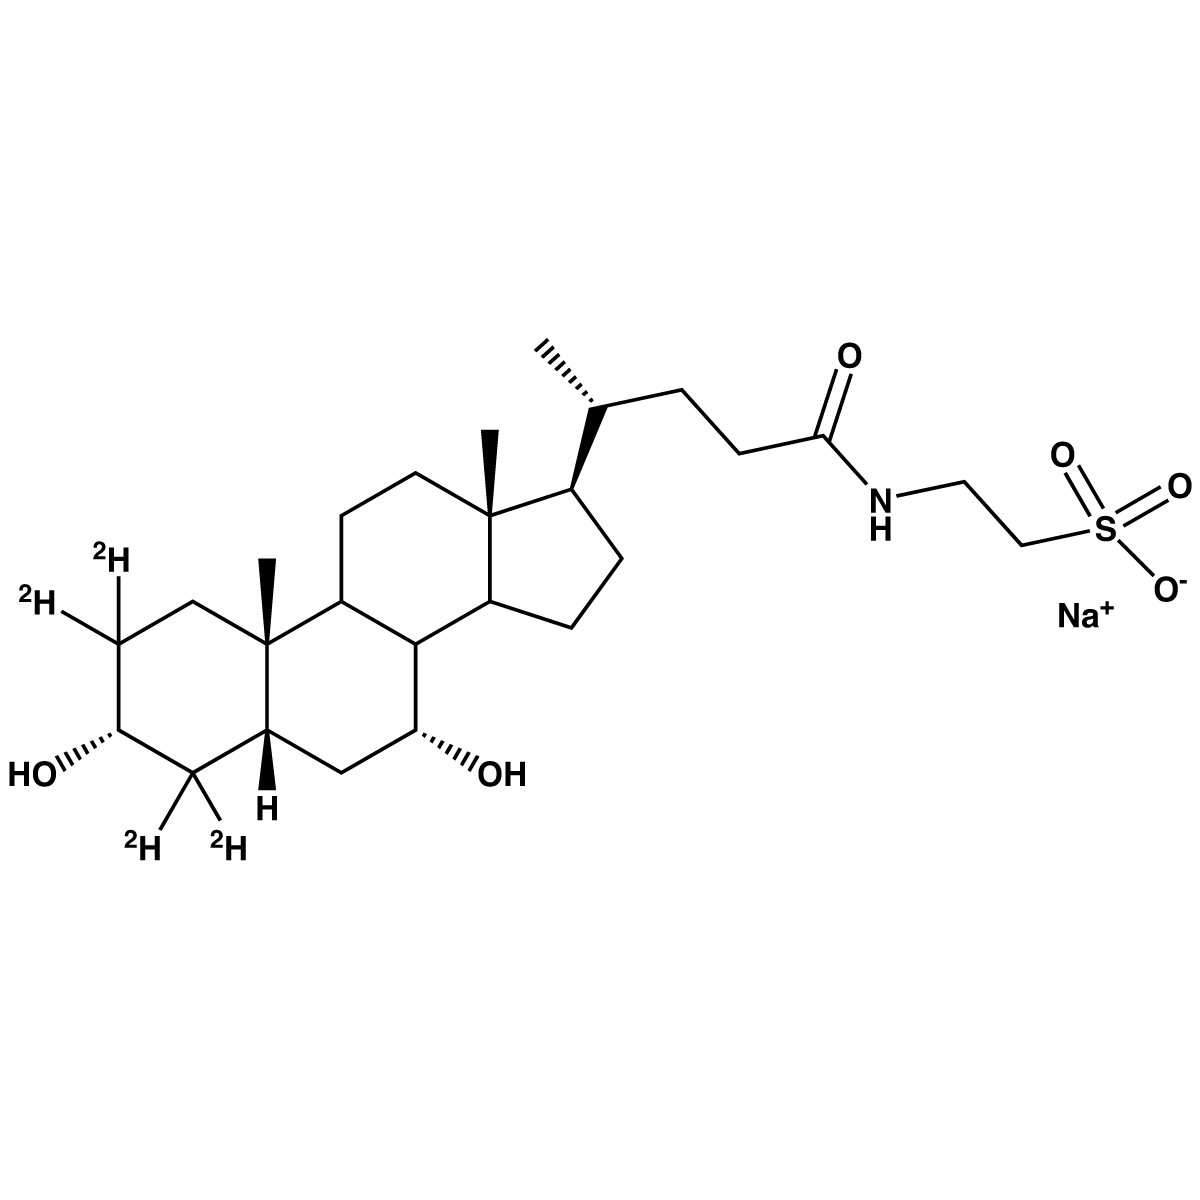 Taurochenodeoxycholic Acid-[d4] Sodium Salt